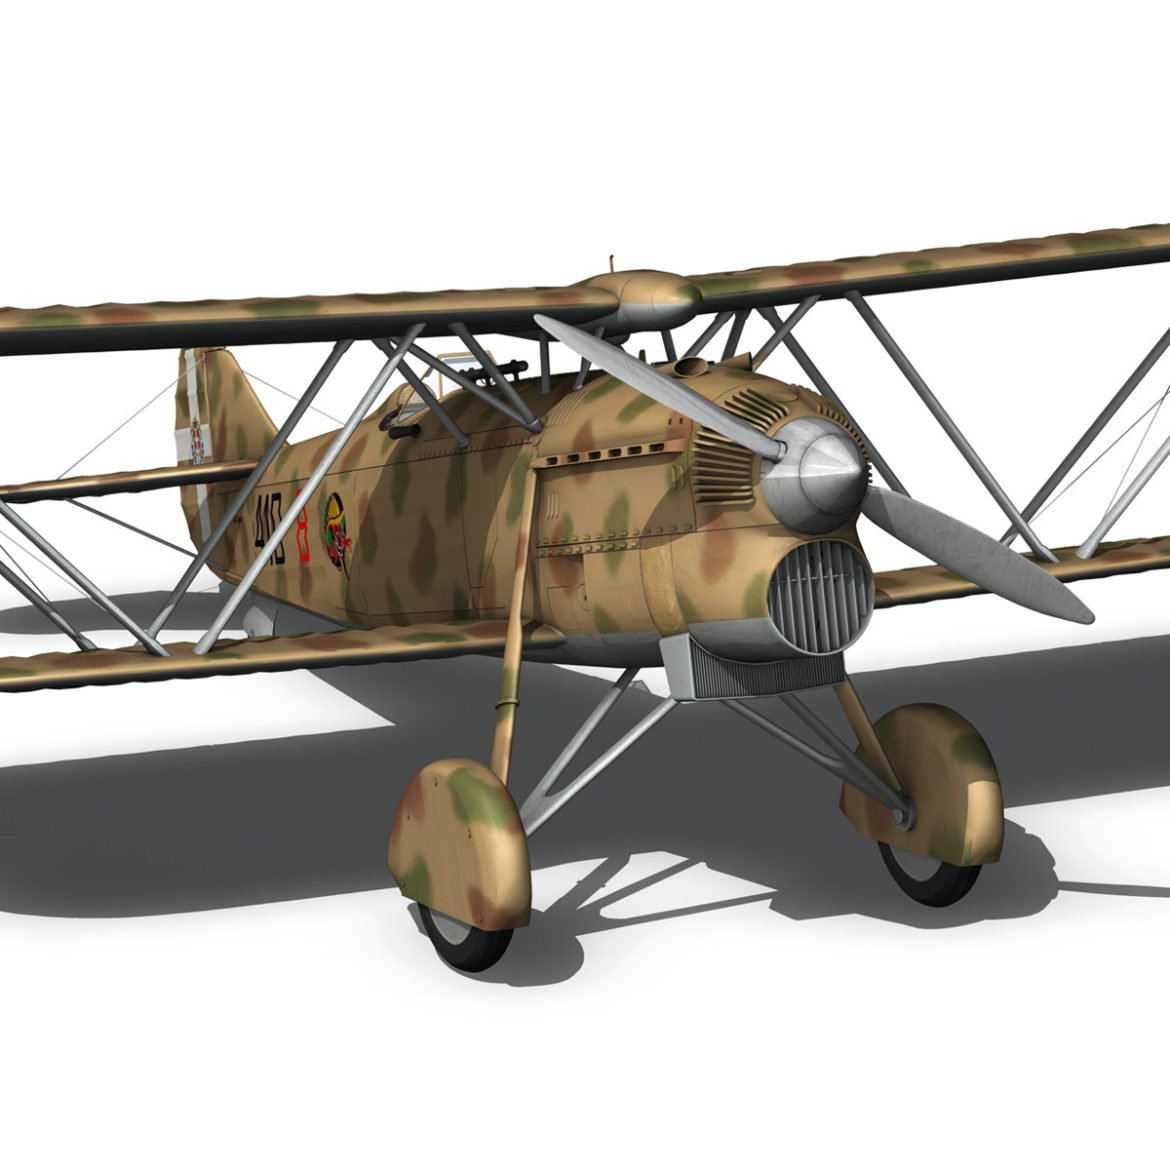 fiat cr.32 – italy airforce – 410 squadriglia 3d model fbx c4d lwo obj 307550